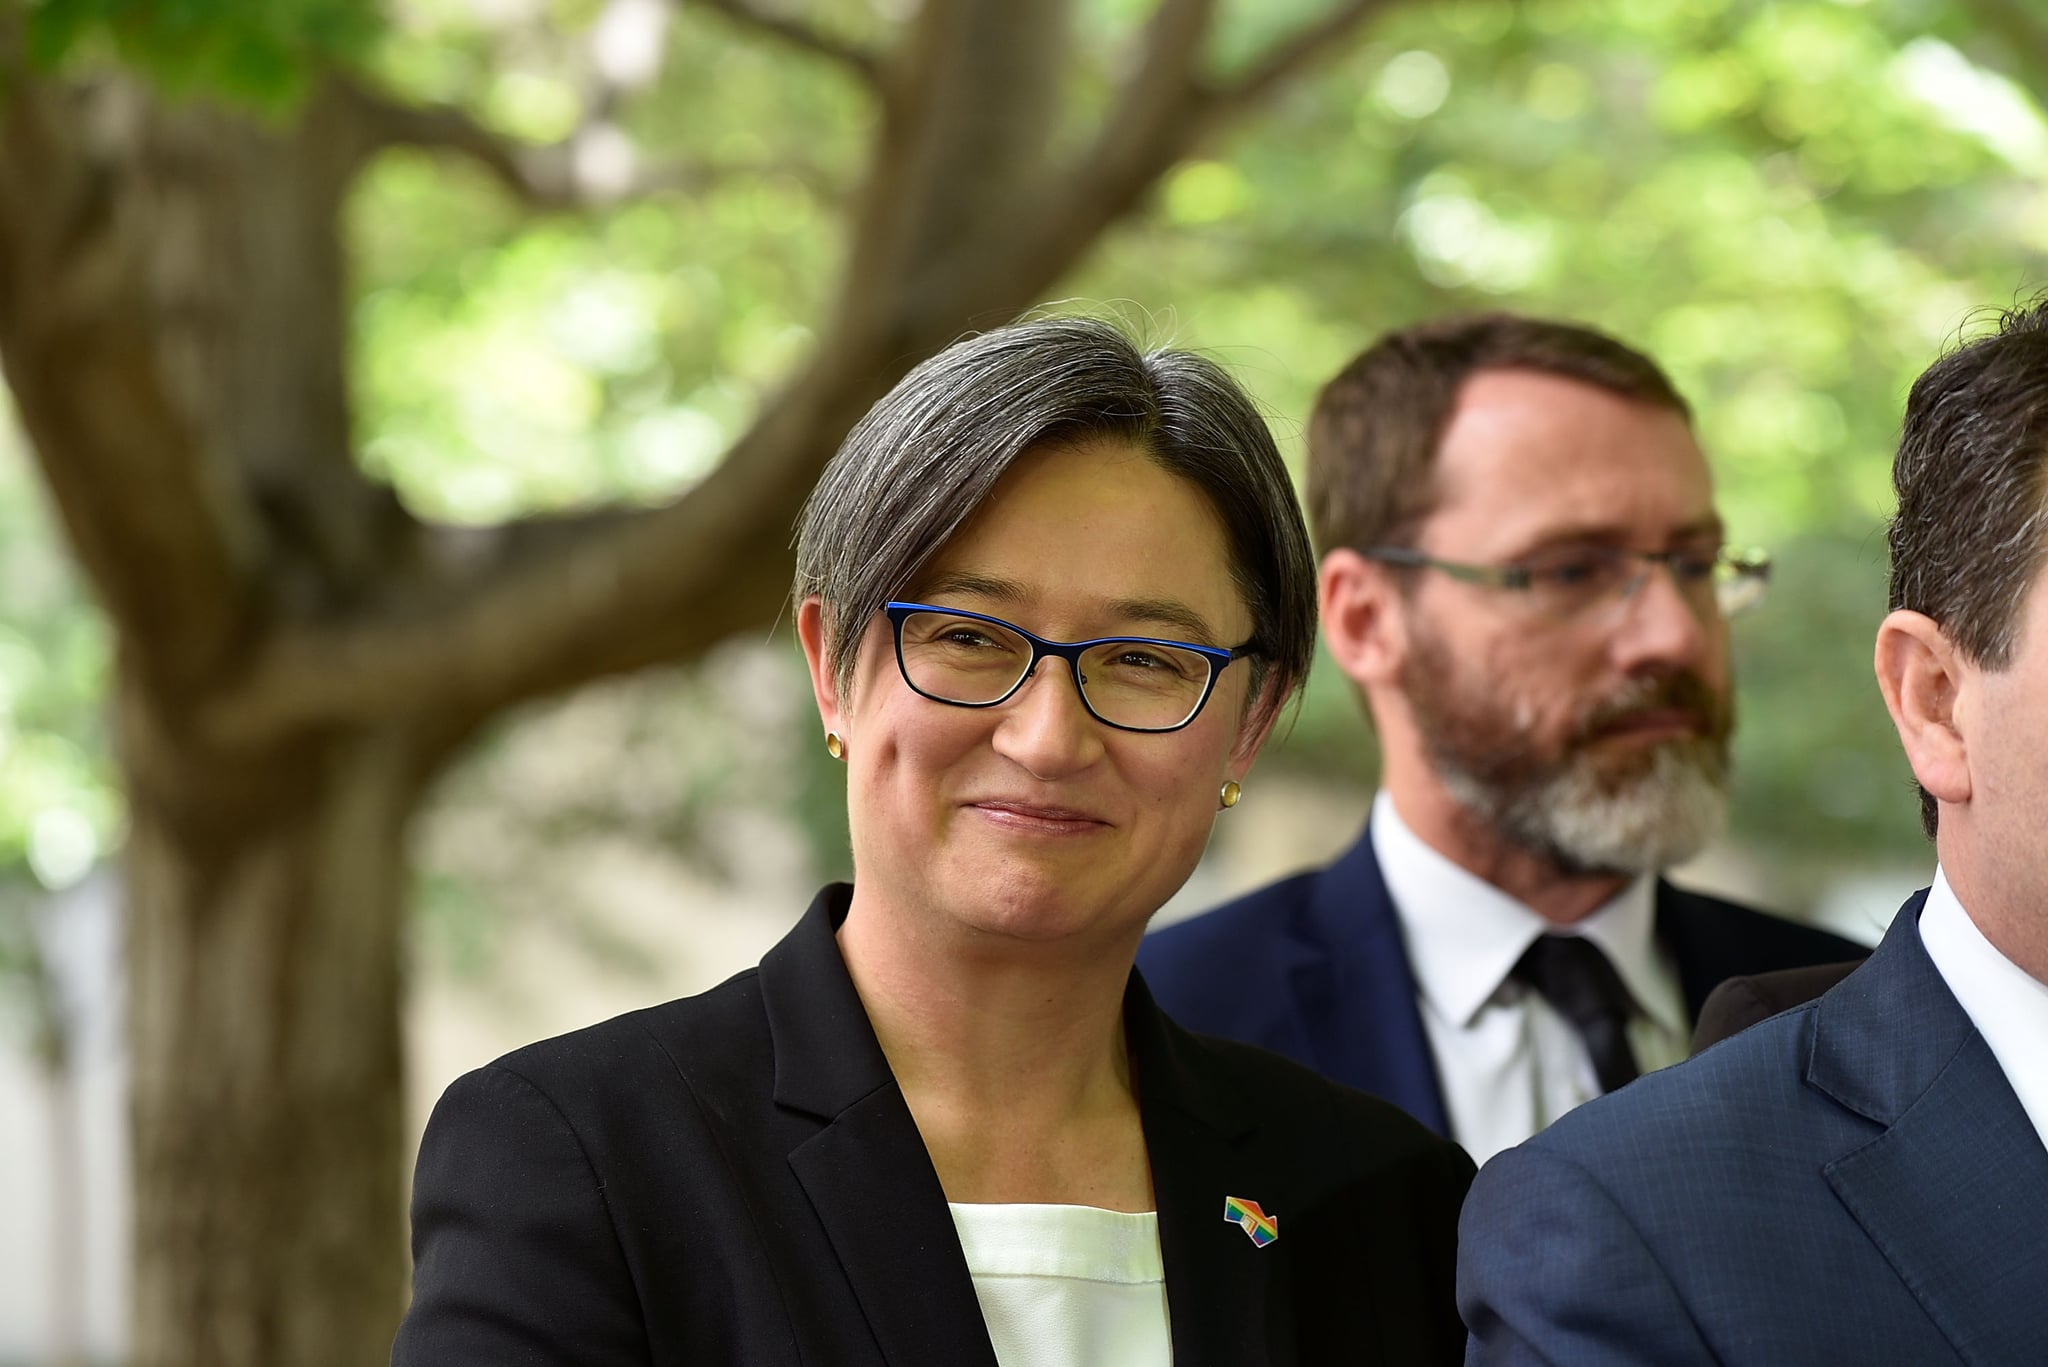 CANBERRA, AUSTRALIA - NOVEMBER 29:  Senator Penny Wong celebtrates the passing of the marriage equality bill through the Senate at Parliament House on November 29, 2017 in Canberra, Australia. The Senate is expected to pass legislation on same-sex marriage today after Australians voted 'Yes' in the Marriage Law Postal Survey for the law to be changed.  (Photo by Michael Masters/Getty Images)